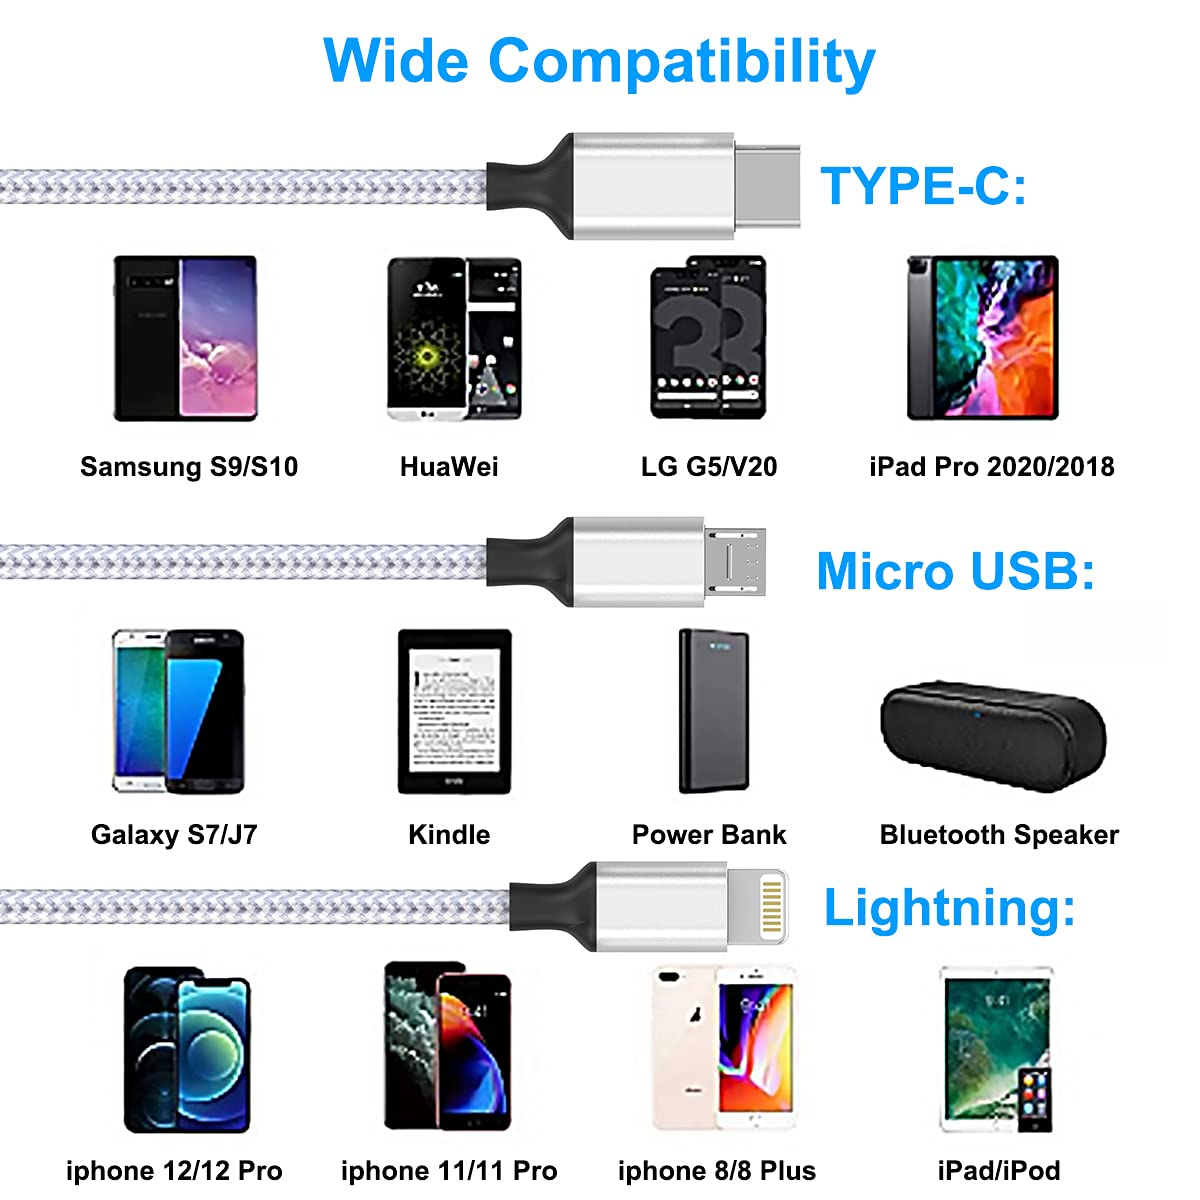 Multi 3 in 1 Universal USB Charging Cable,1.8M/5.9FT Nylon Braided Charging Cord Adapter with Lightning+Type-C+Micro USB Port Connectors for Android/iPhone/Apple/Samsung/Pad Pro/XiaoMi/Huawei(Gray)